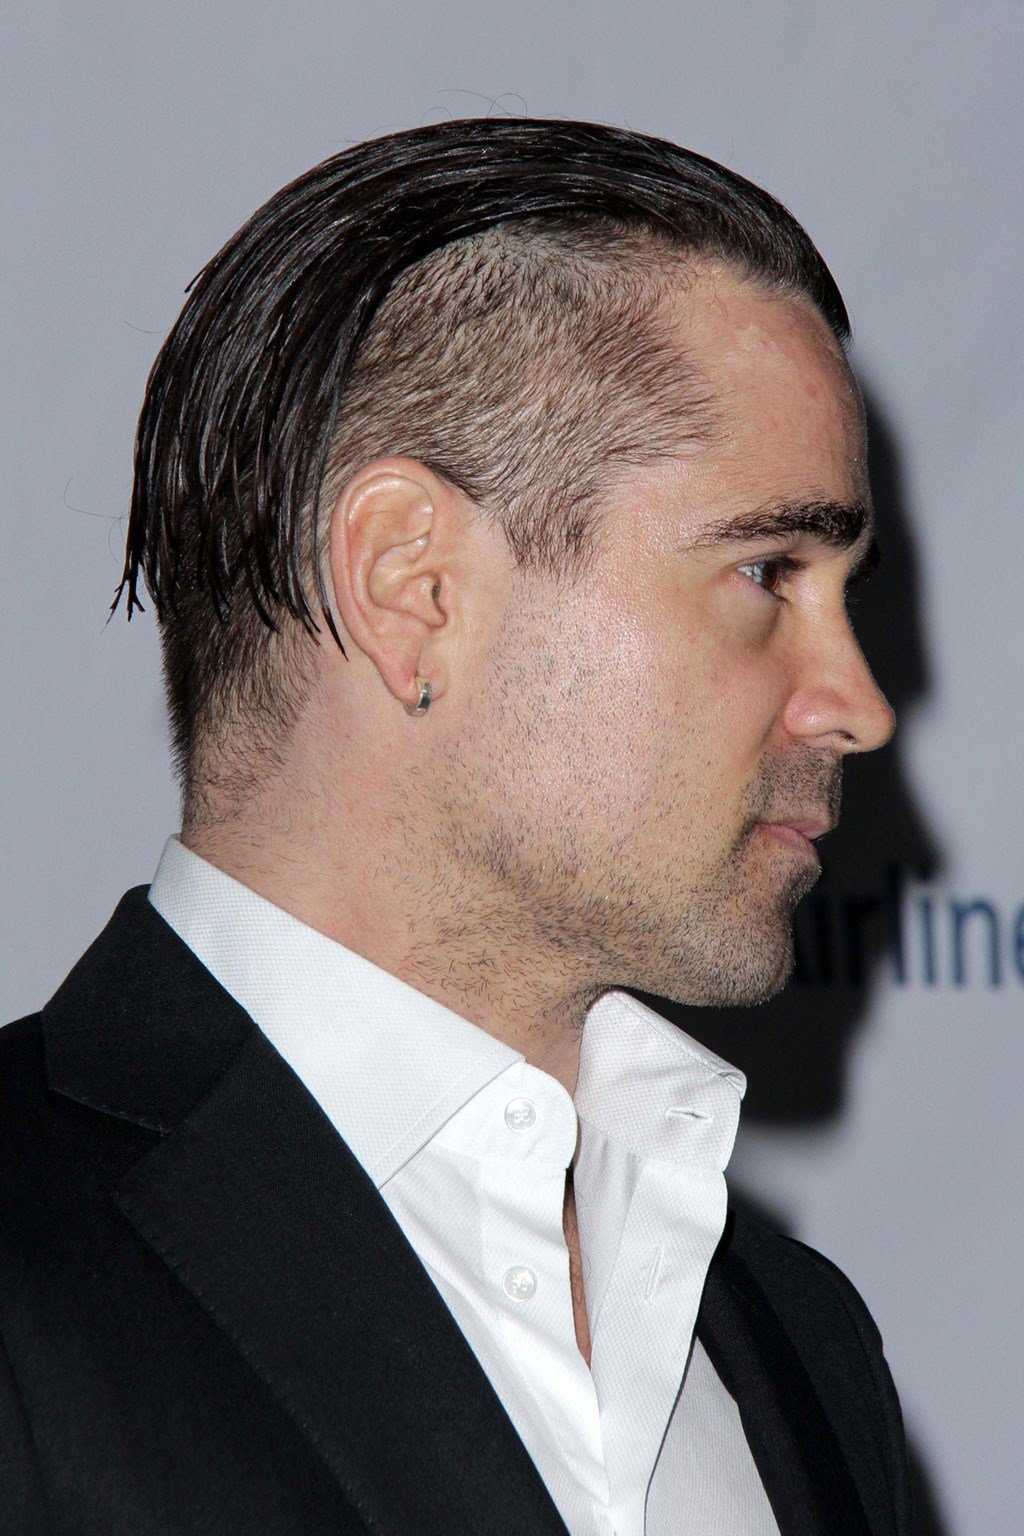 The Best And Worst Hairstyles For Men In Their 40S Best Life Pictures